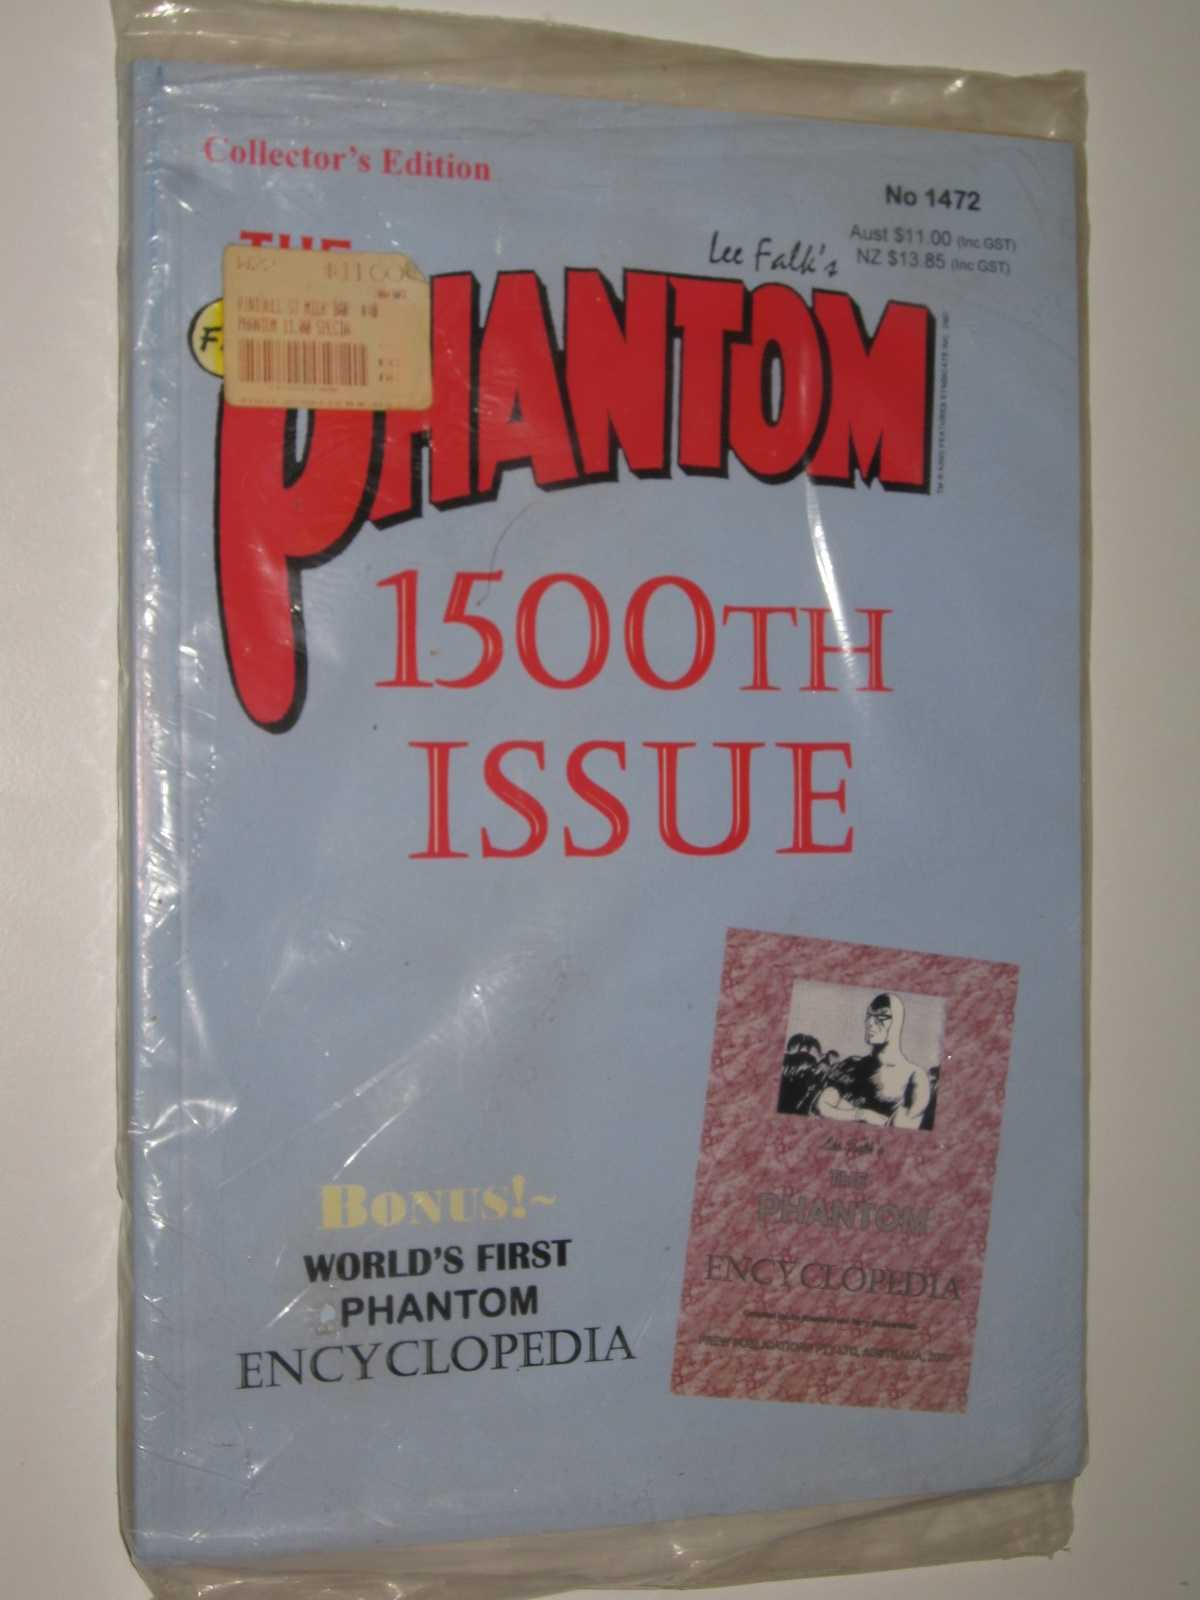 The Phantom #1472, 1500th Issue + The Phantom Encyclopedia, Fall, Lee